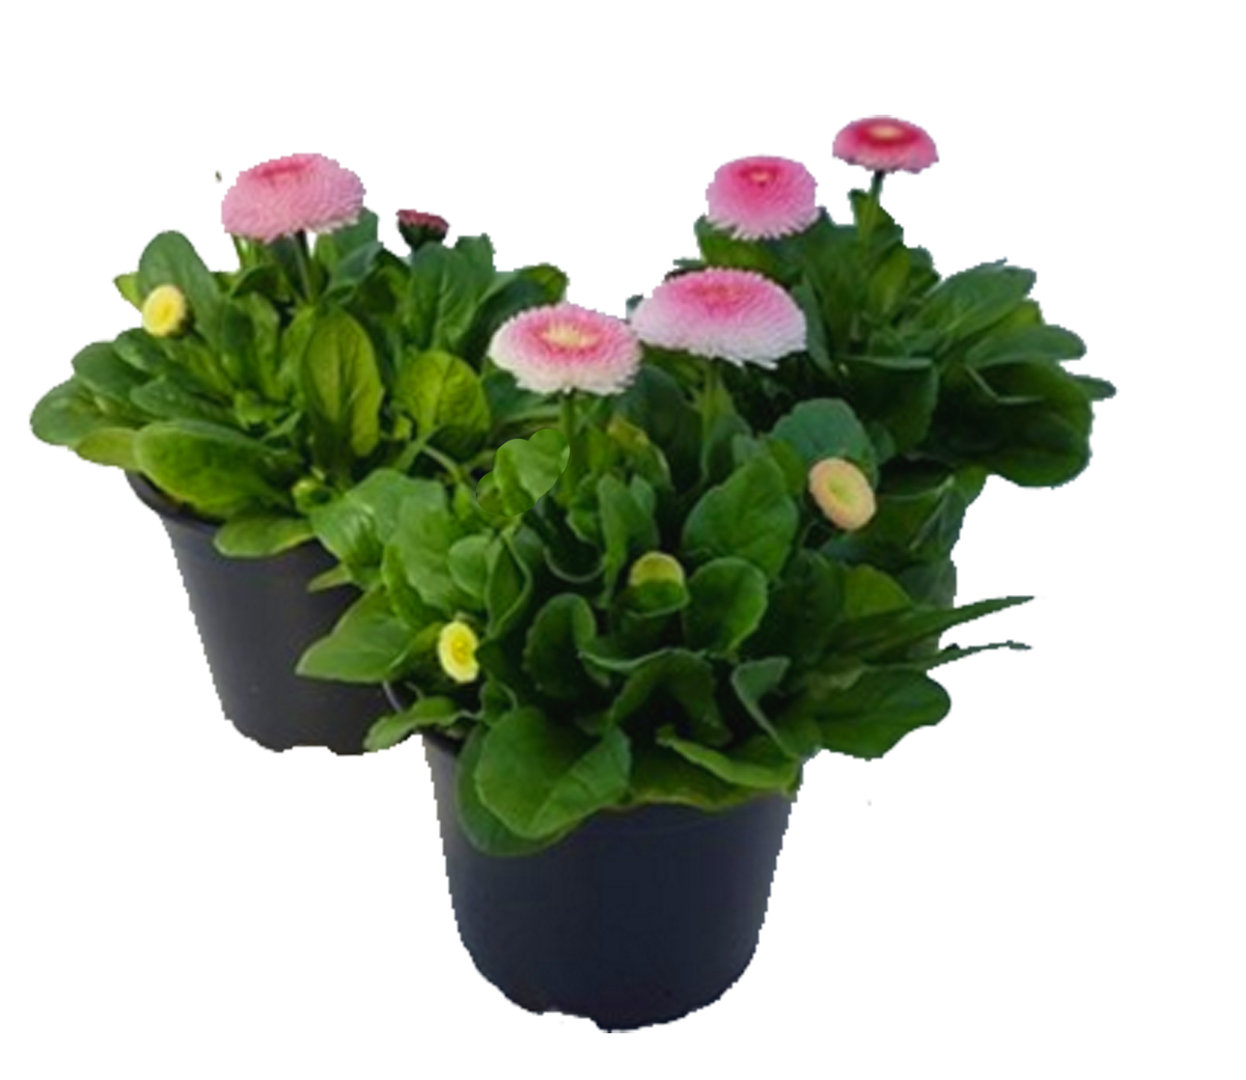 bellis perennis 39 erdbeersahne 39 g nsebl mchen rosa gro e bl ten 12 cm topf pflanzen versand. Black Bedroom Furniture Sets. Home Design Ideas